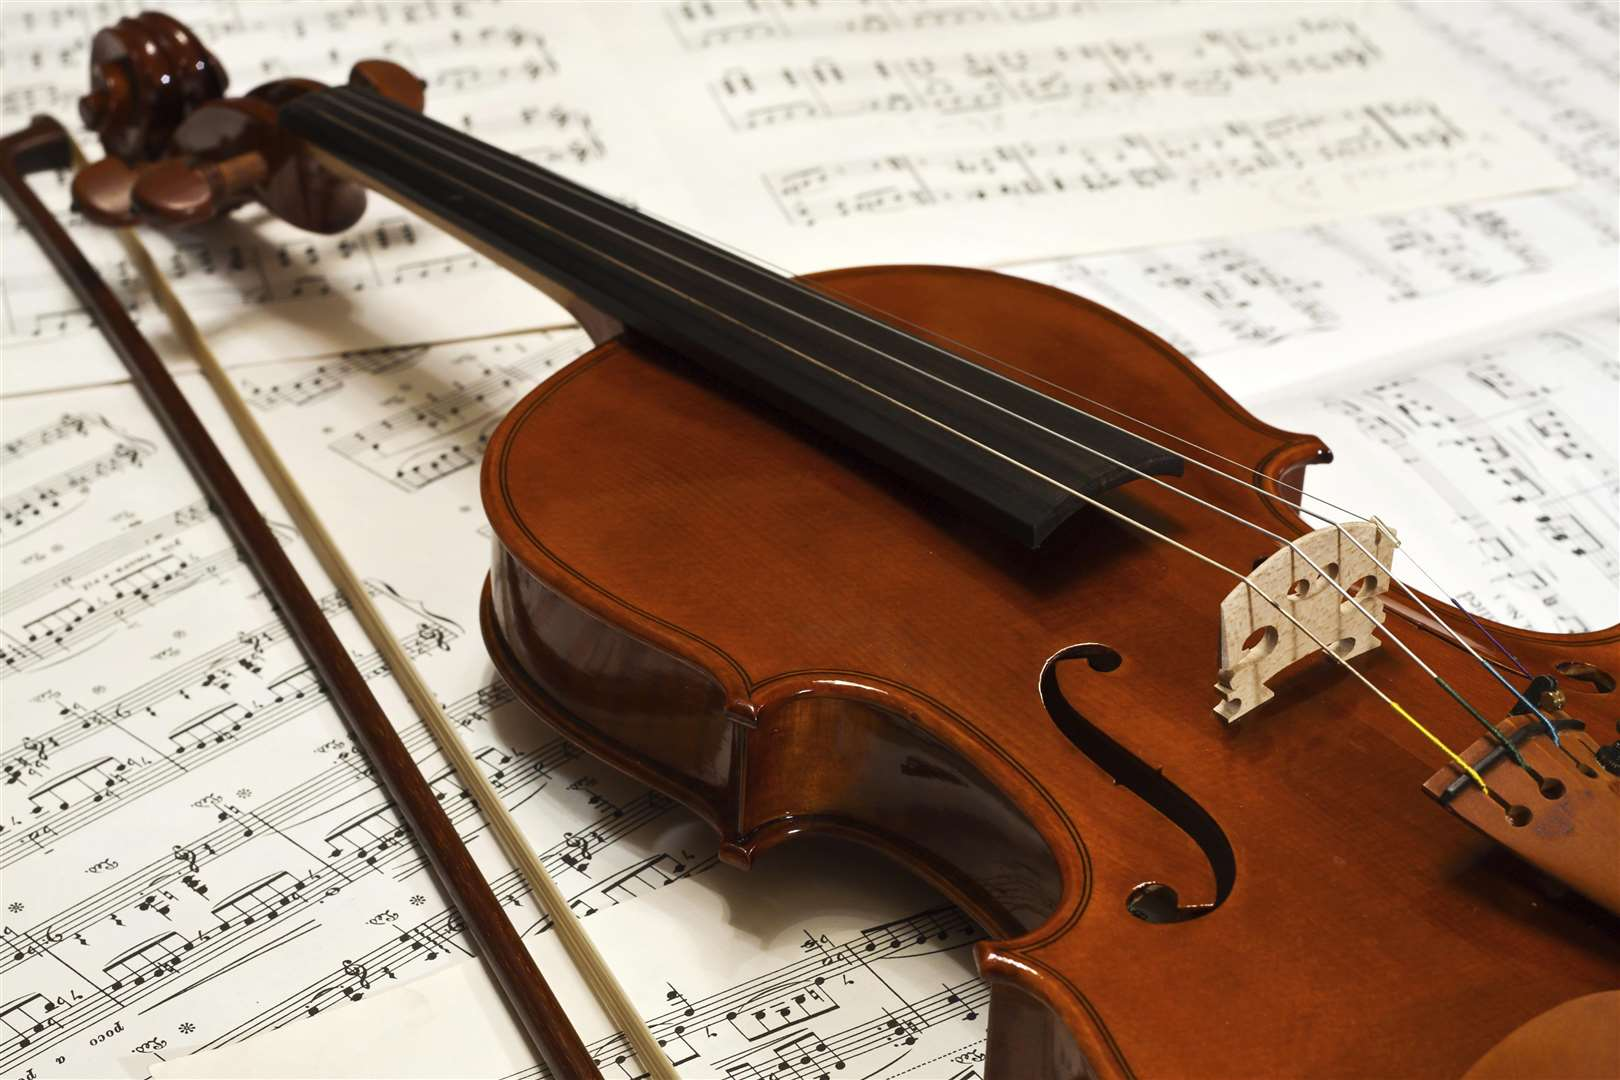 MUST CREDIT Picture: istock.comKMG GROUP USE ONLYConditions of Use: KMGSlug: music MM 260115Caption: A violin with sheet music. Copyright: istock images.Location: MedwayCategory: MusicByline: UnknownContact Name: istockContact Email: Contact Phone: download from istockUploaded By: Clare FREEMANCopyright: UnknownOriginal Caption: FM3618716 (5880351)